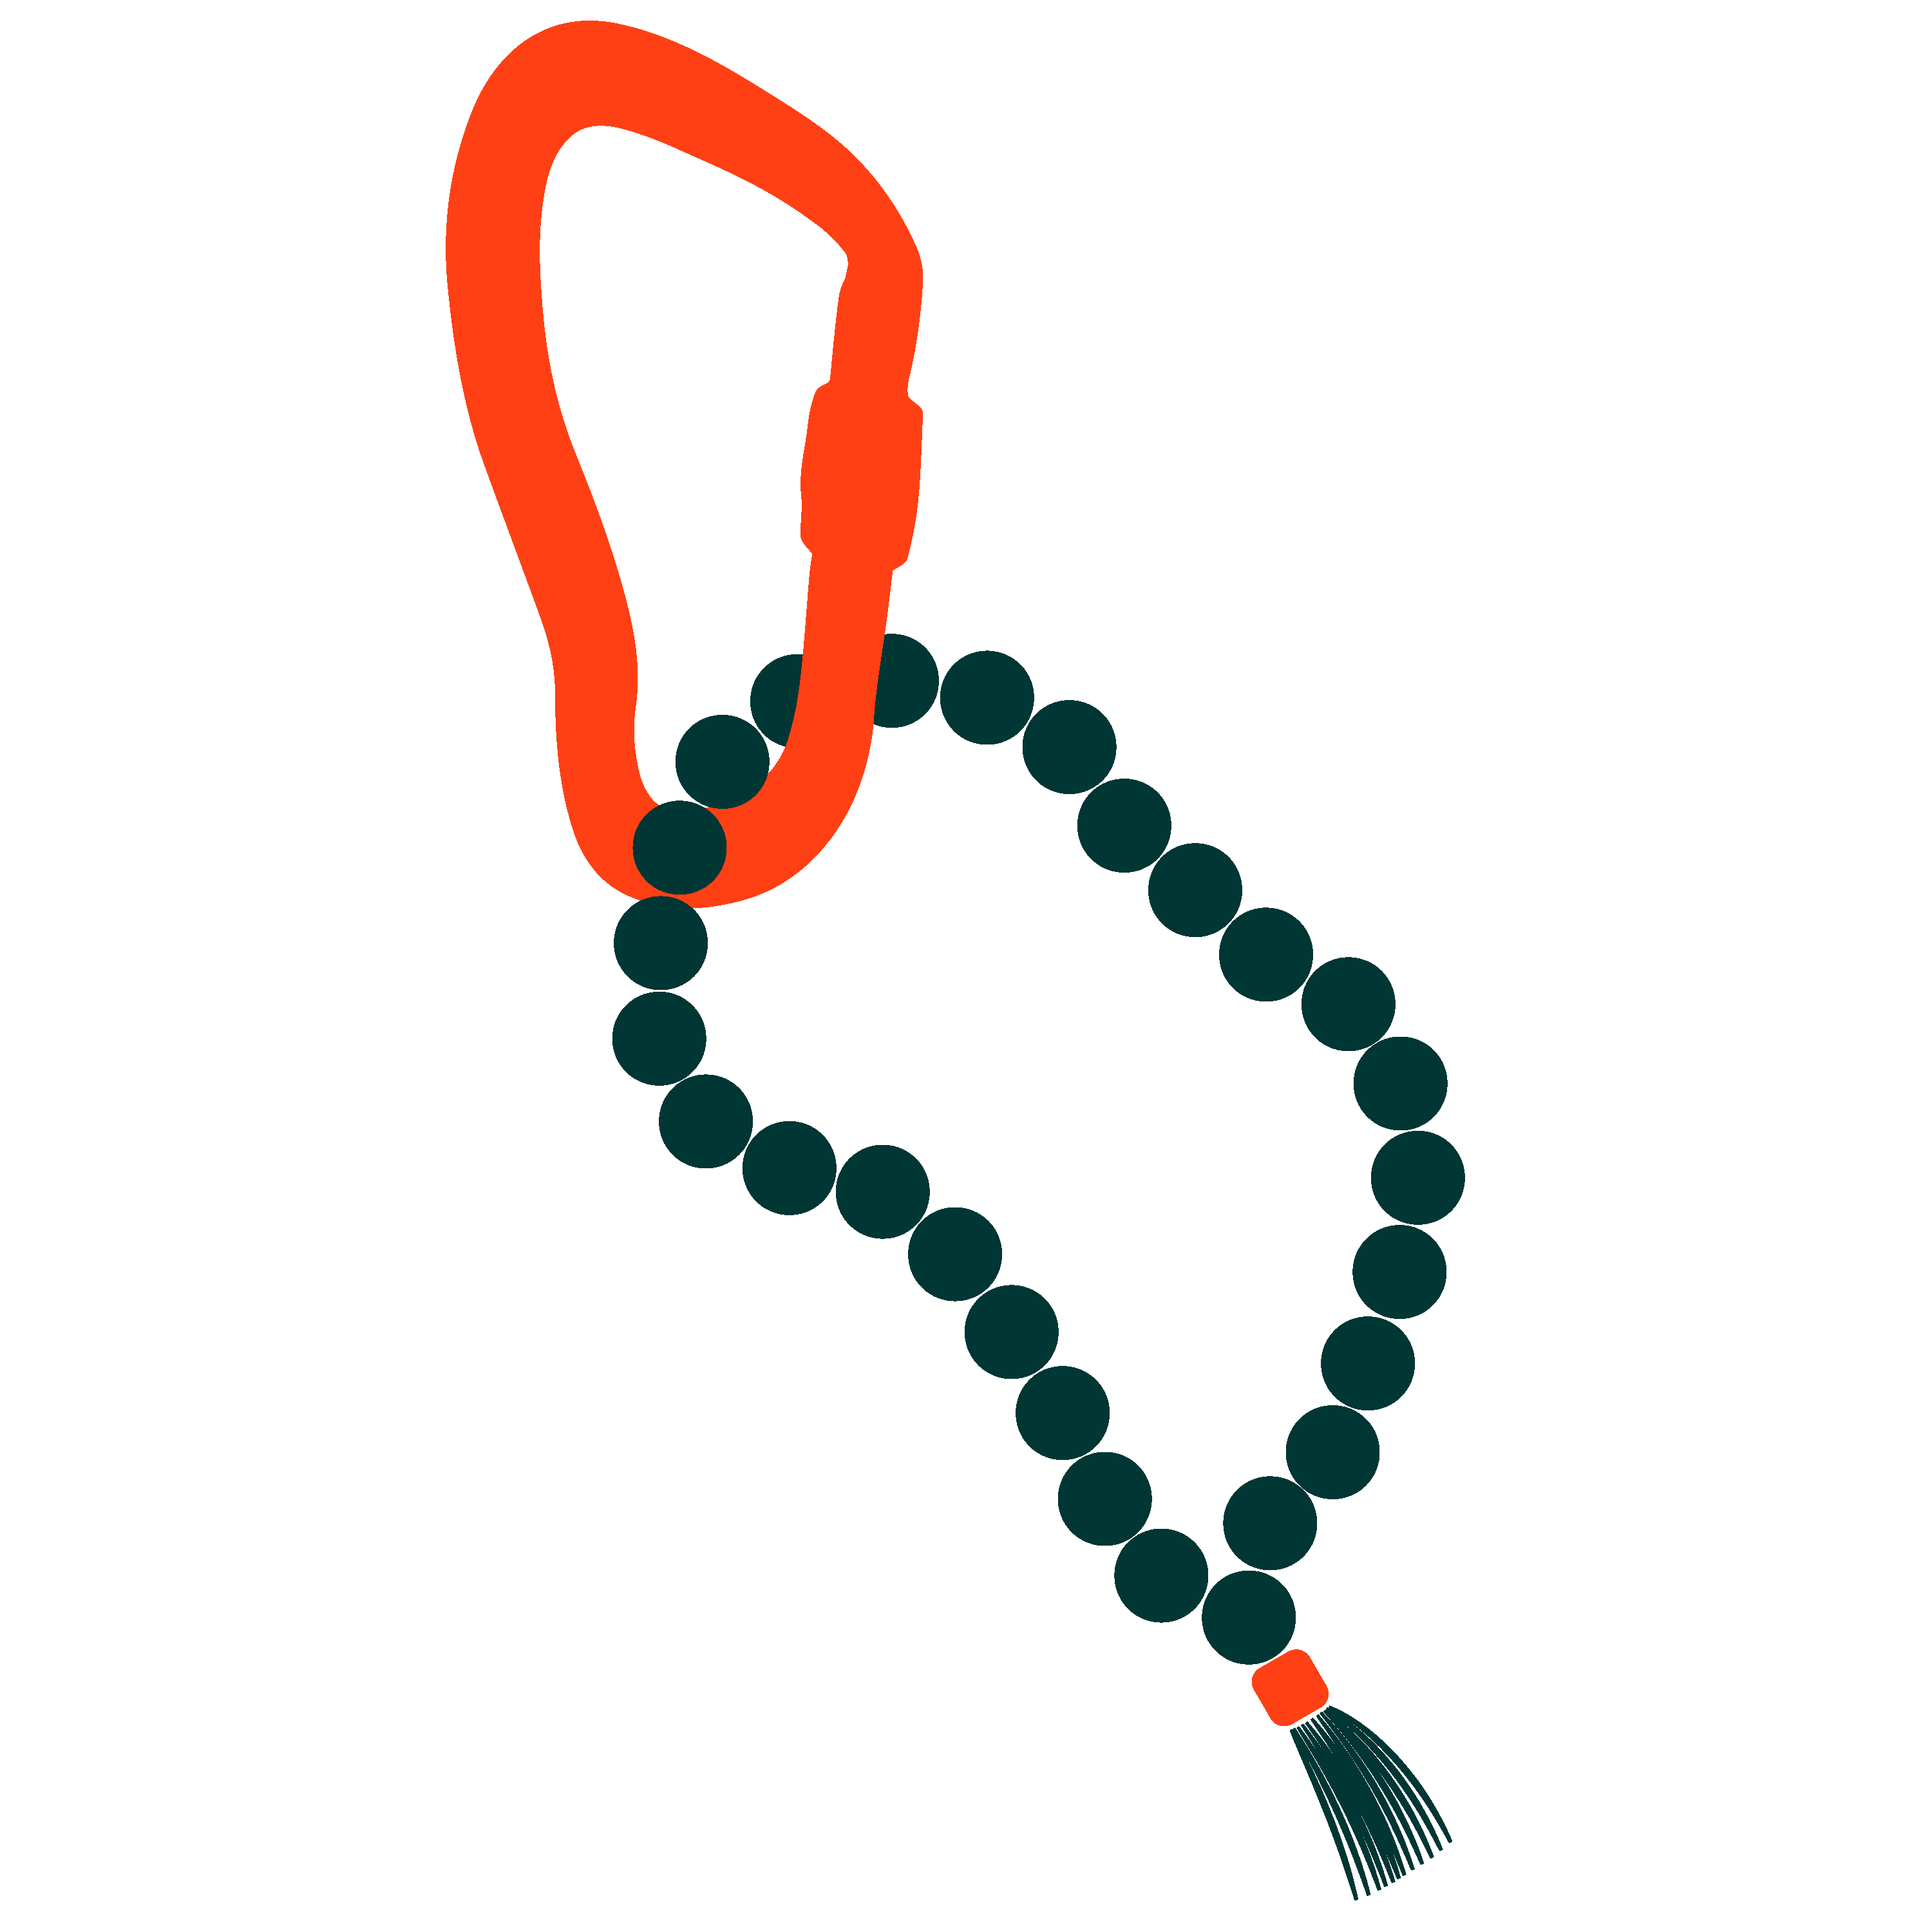 Carabiner-+-Mala-Beads-Red-and-Green